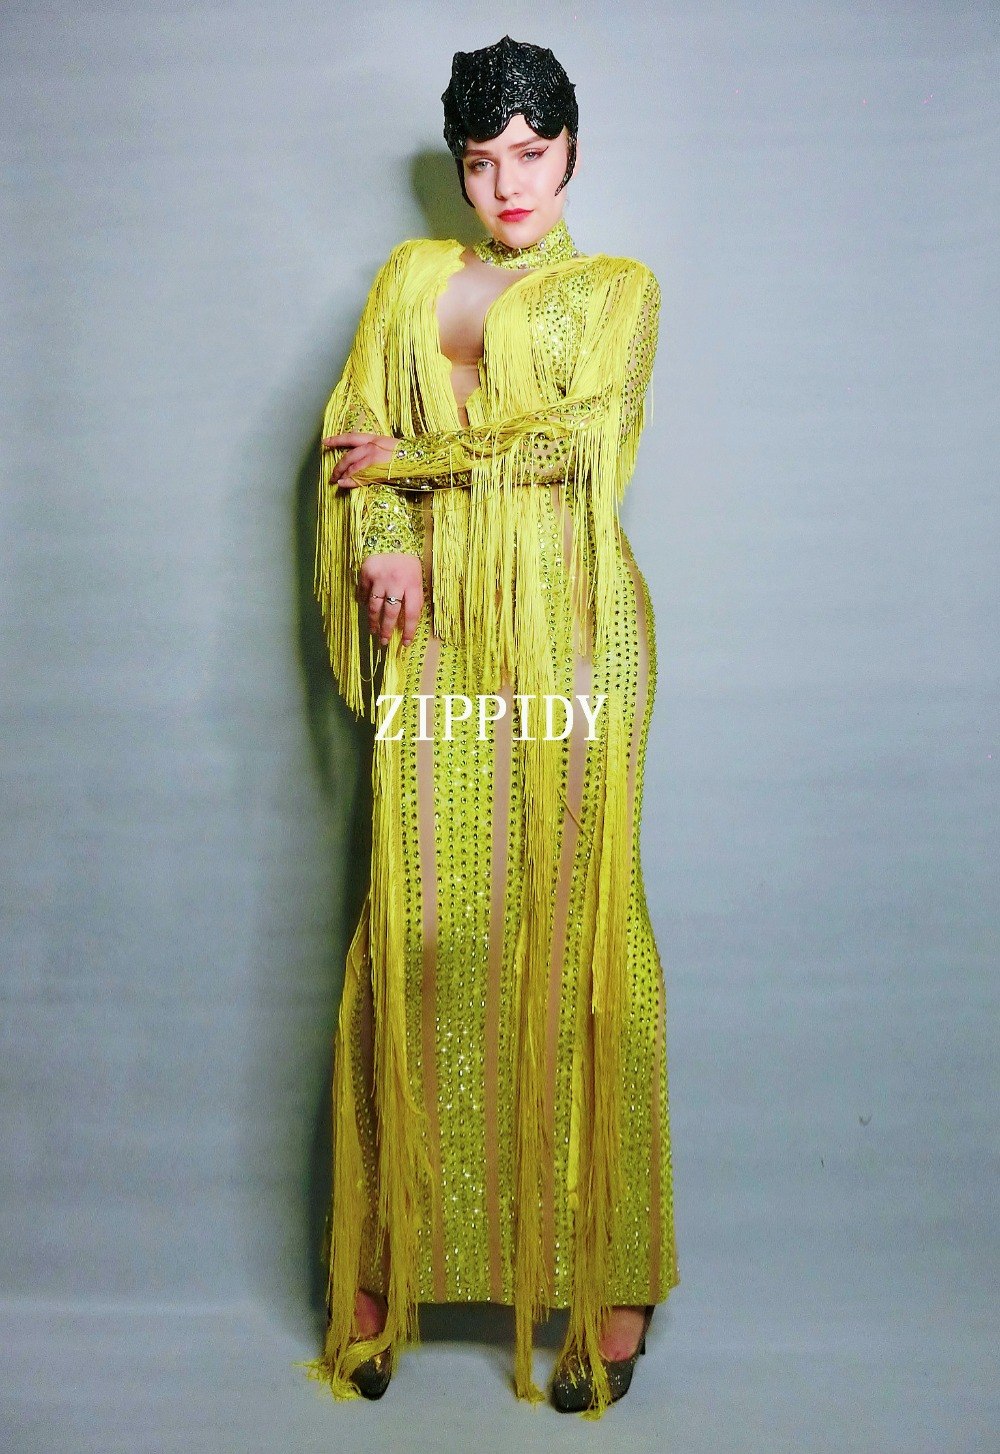 Shining Yellow Fringes Rhinestones Dress Lady Evening Party Sexy Long Dress Prom Birthday Celebrate Stretch Tassel Dresses